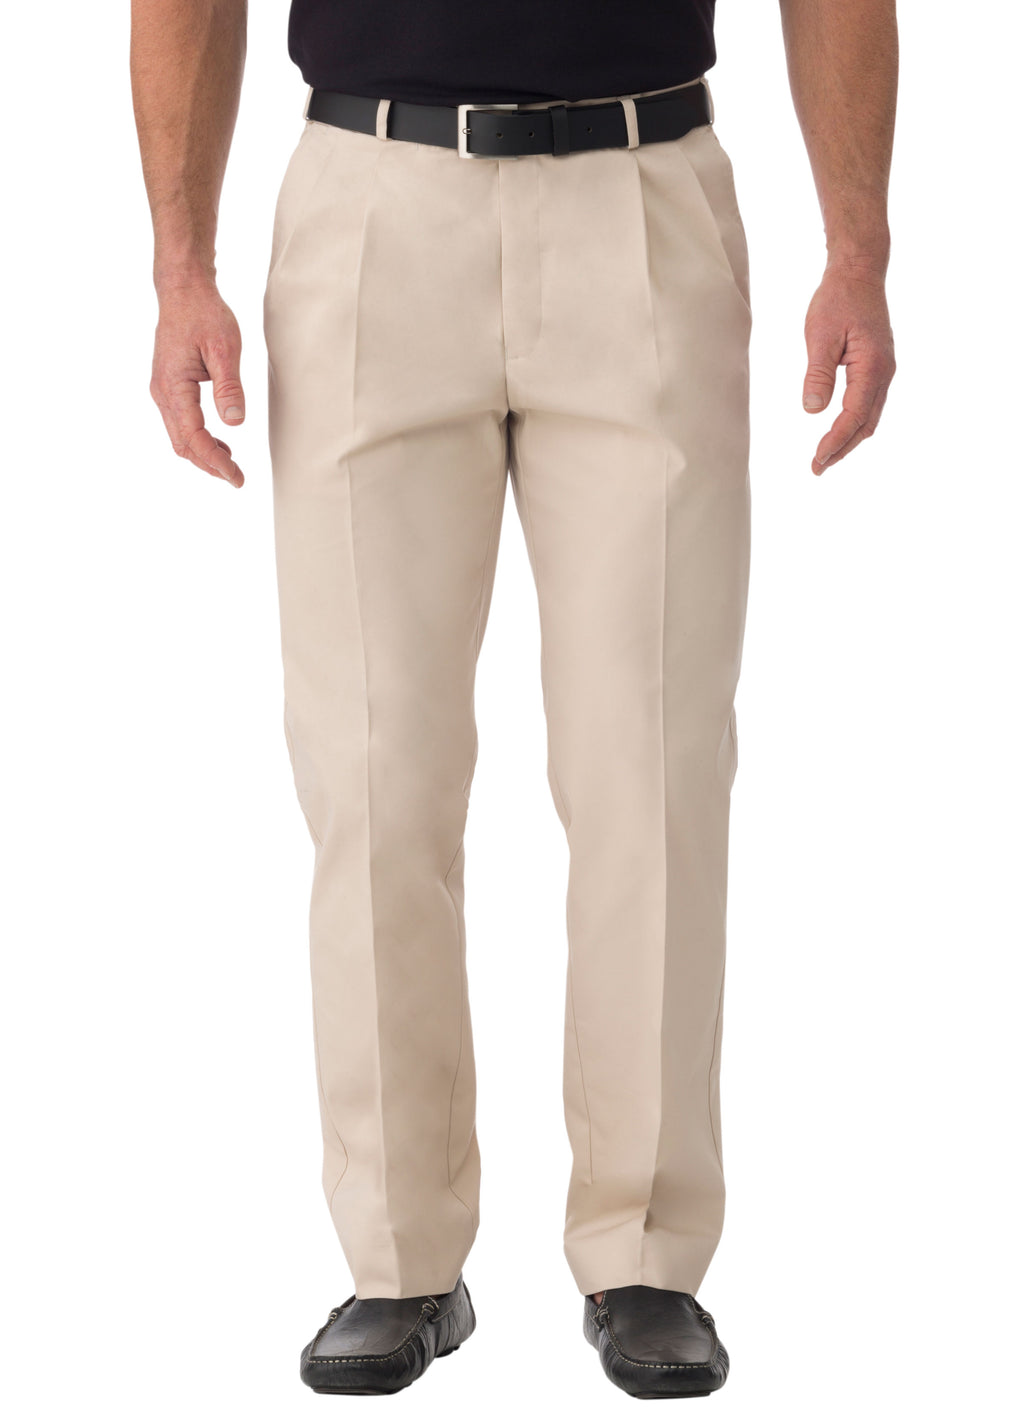 ARTHURTON PLEATED CASUAL TROUSER